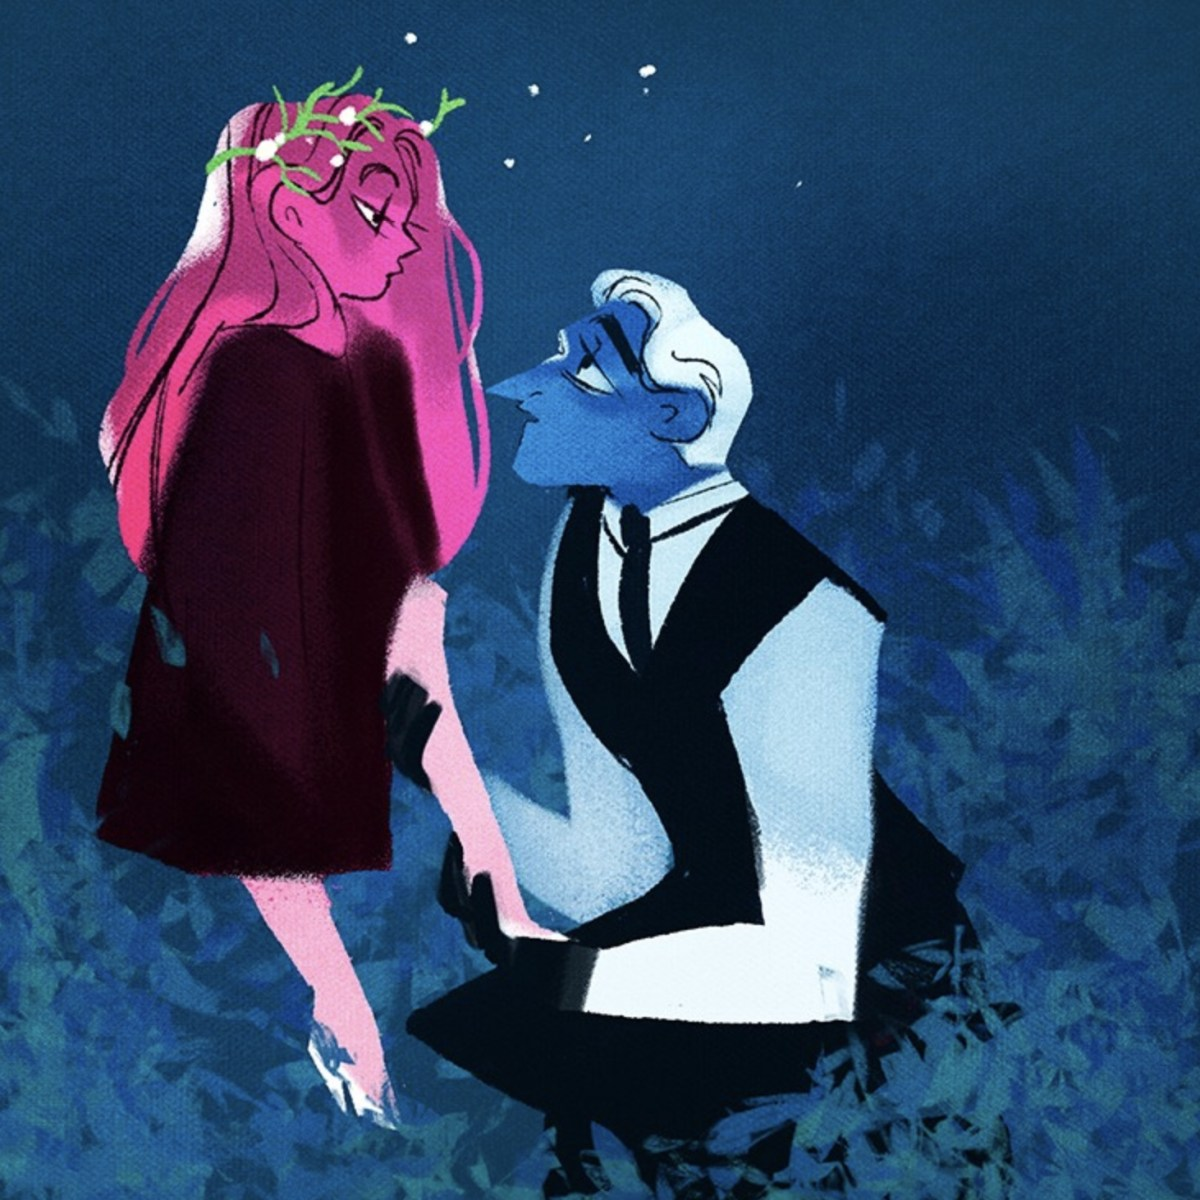 From web comic Lore Olympus, Hades helps Persephone with her shoe.